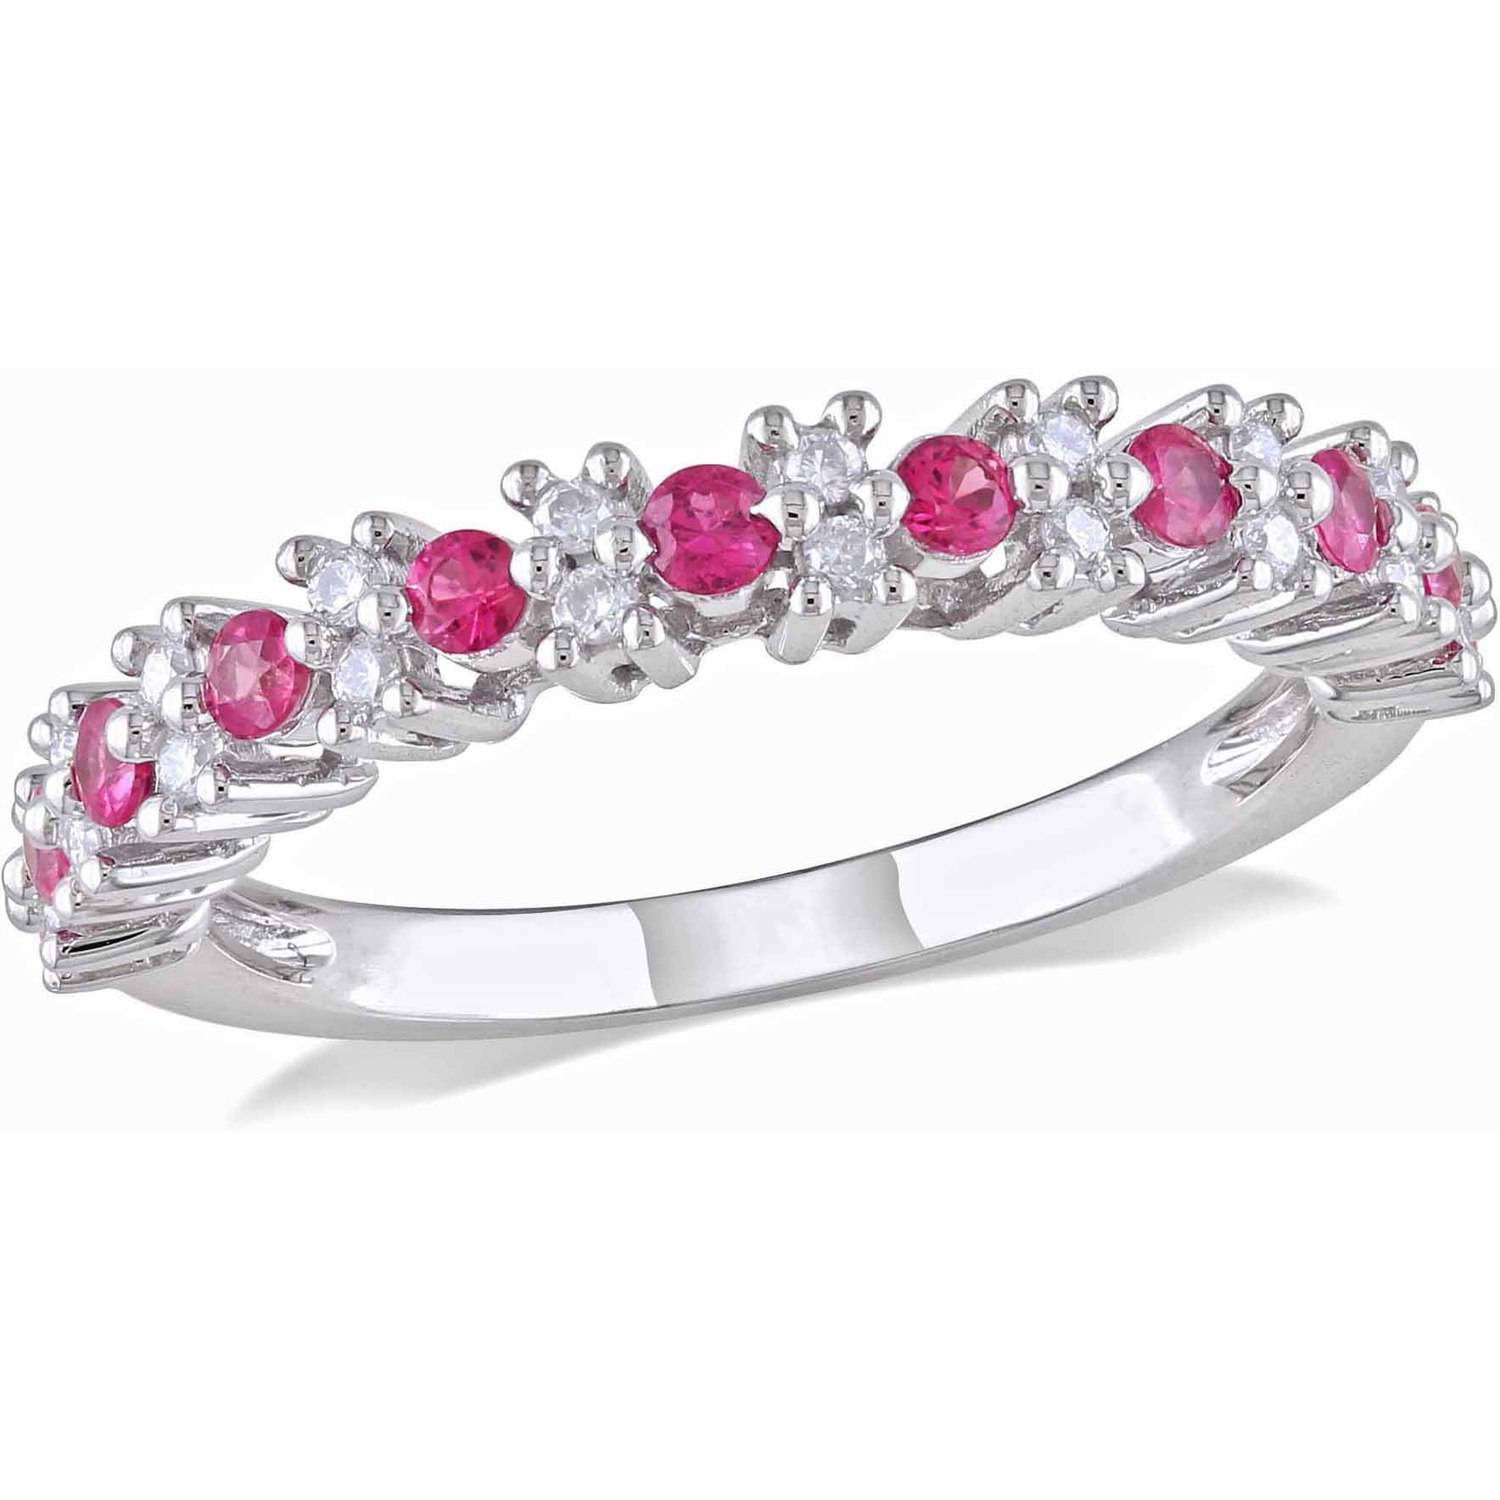 1 2 Carat T.G.W. Pink Sapphire and 1 6 Carat T.W. Diamond 10kt White Gold Semi-Eternity Anniversary Ring by Generic